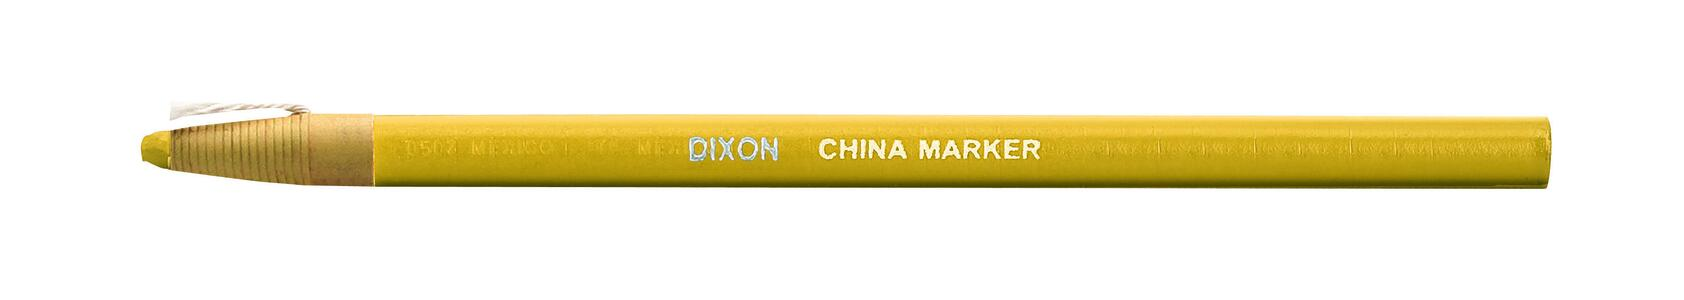 DIXON CHINA MARKER GIALLO